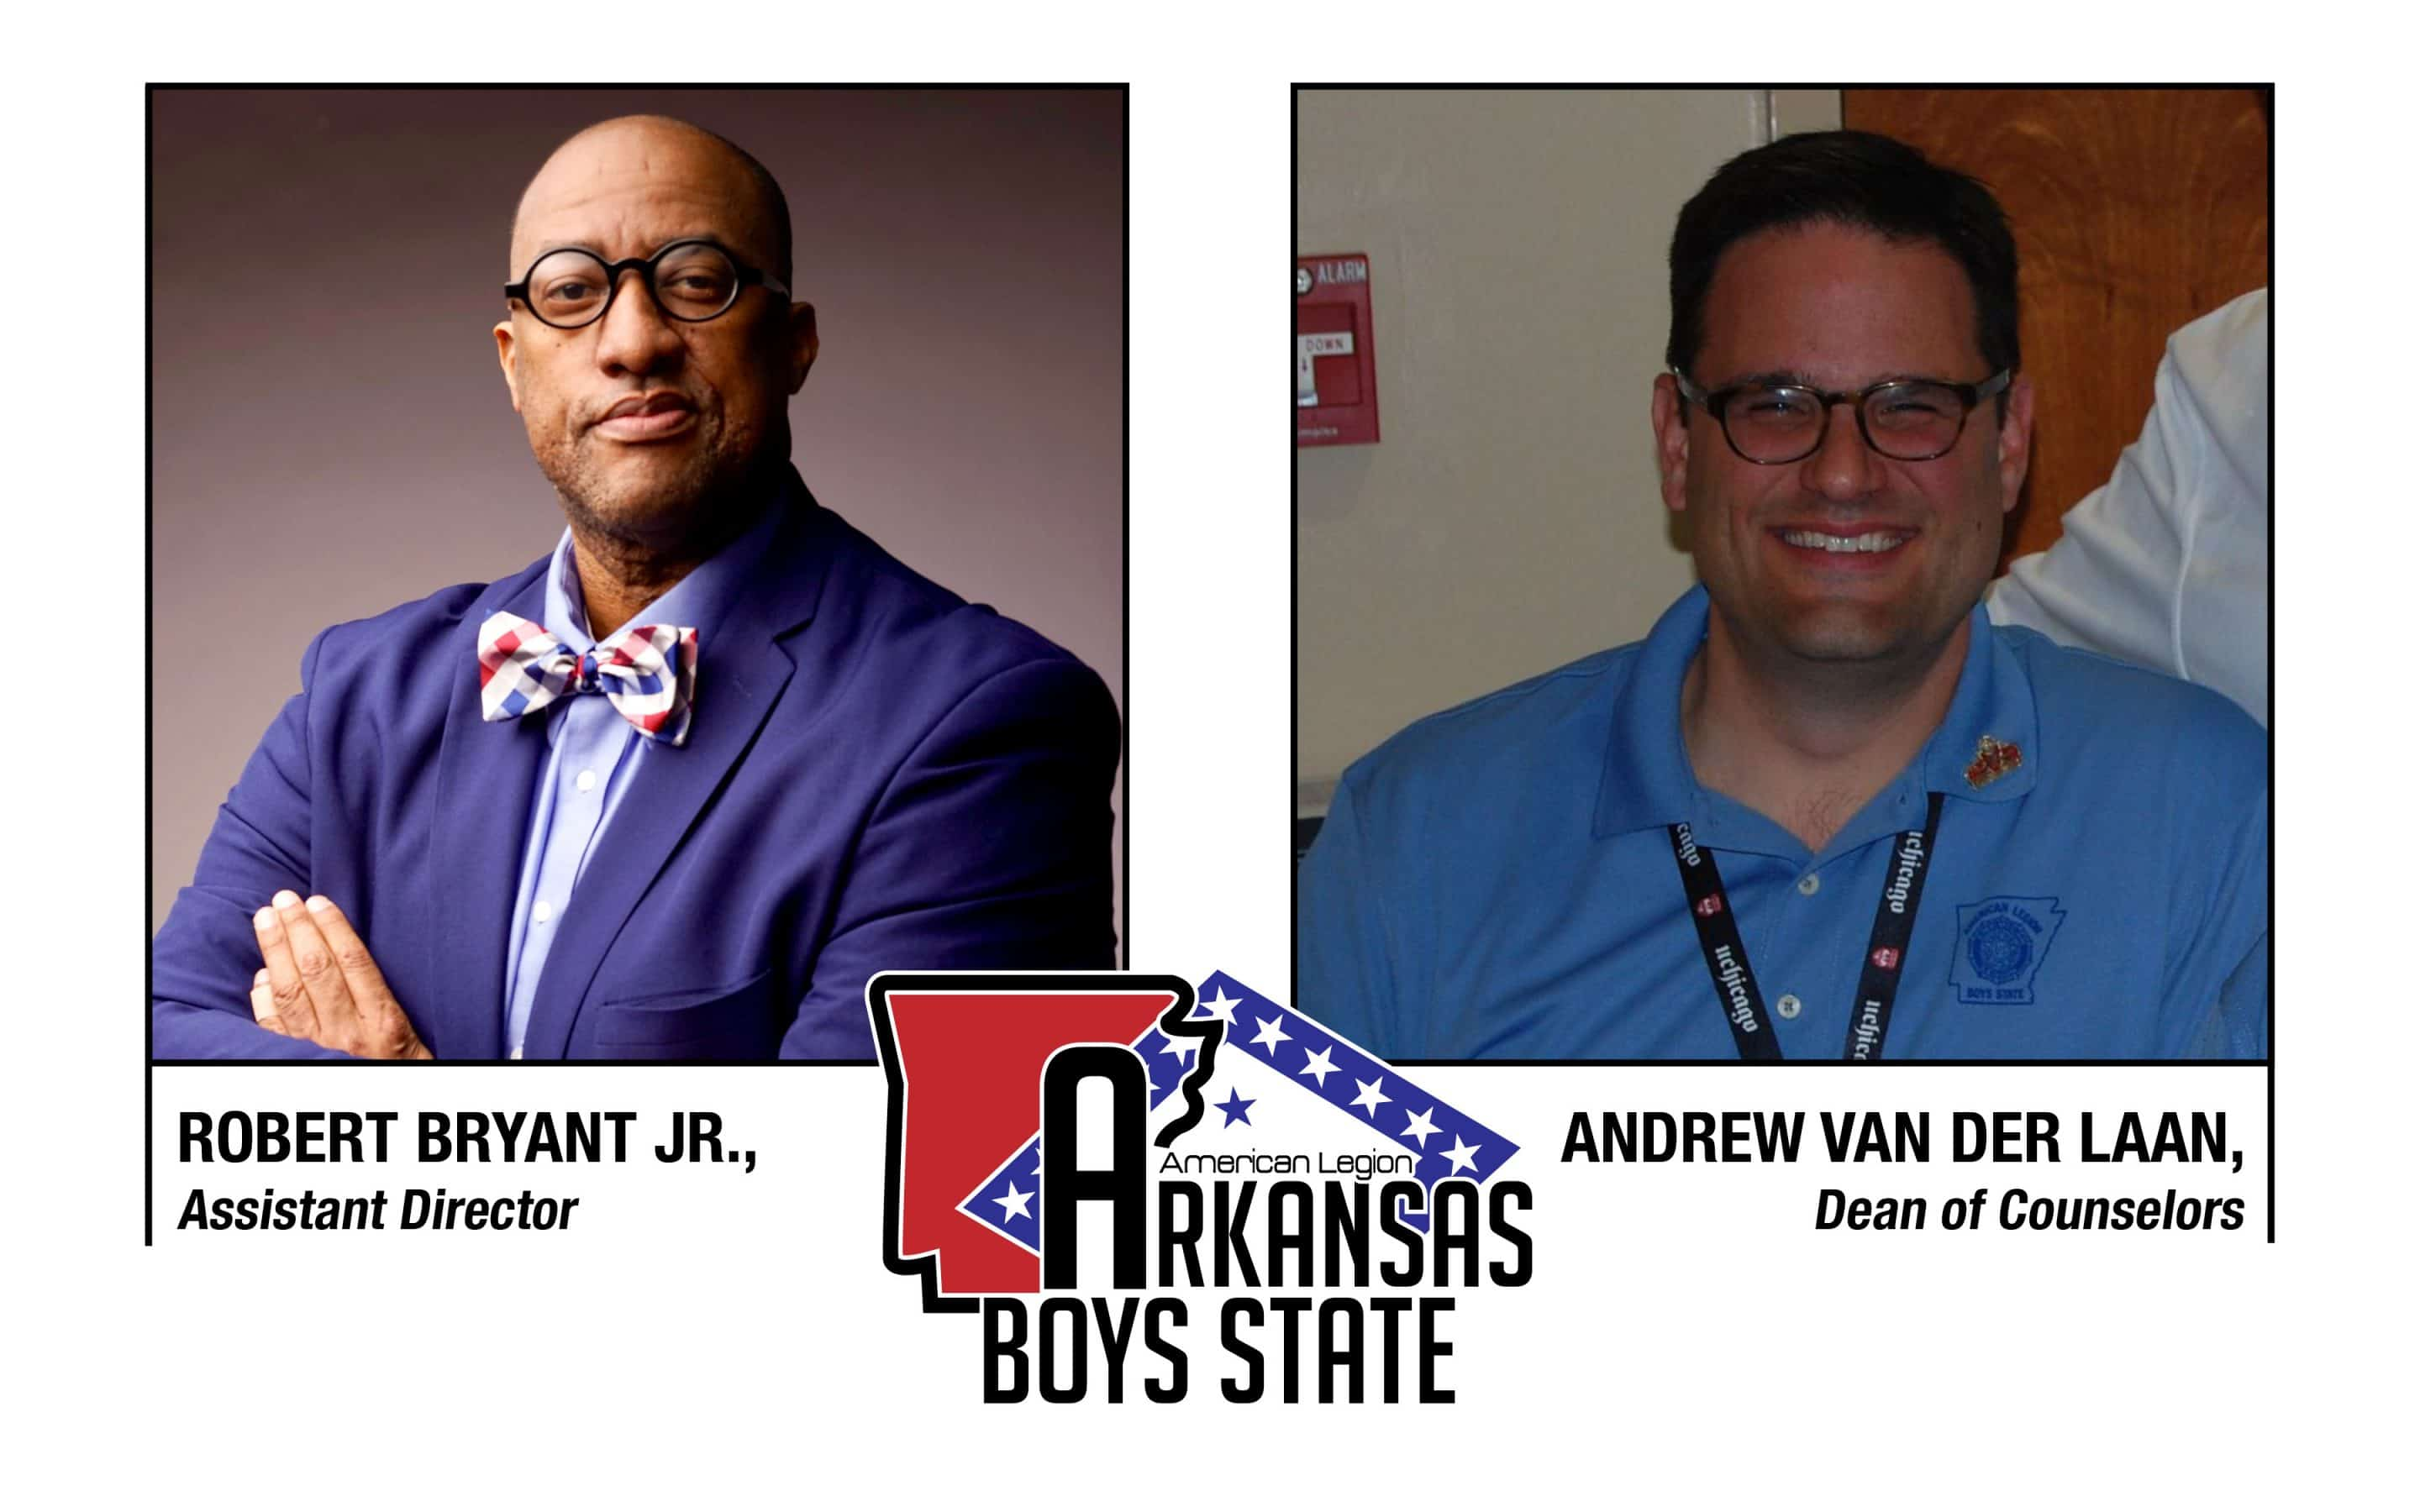 Arkansas Boys State announces Bryant as assistant director, Van Der Laan as dean of counselors